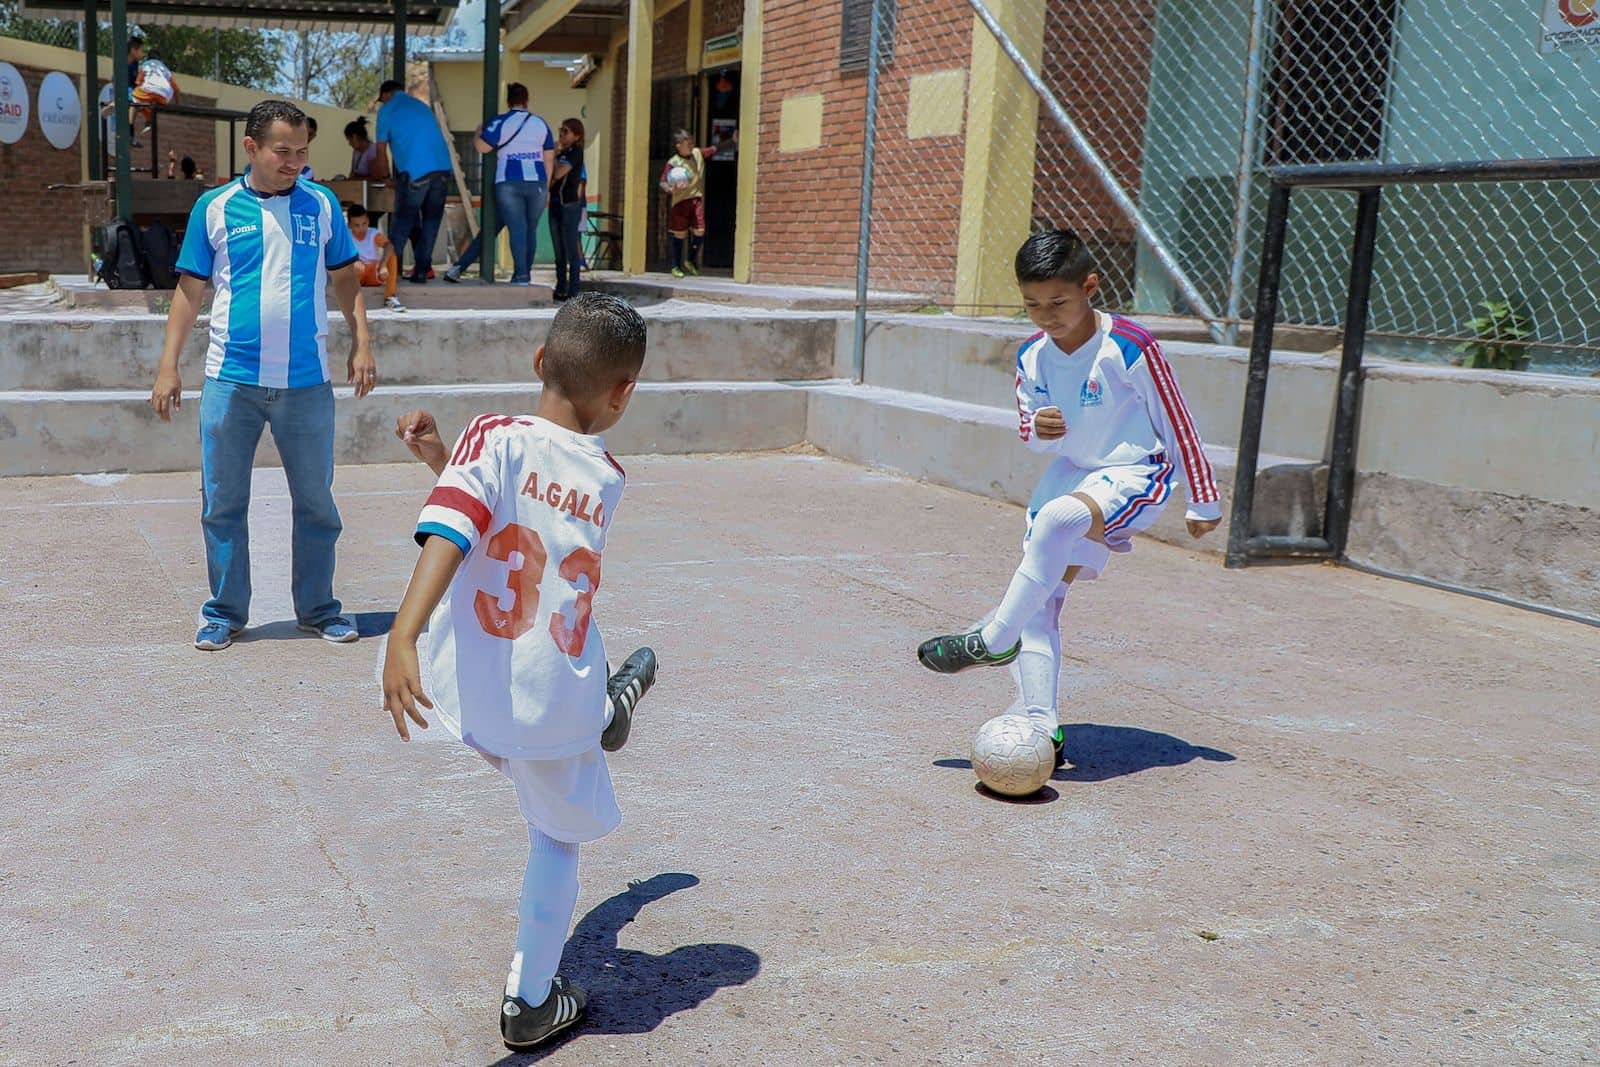 Two boys in white soccer uniforms play soccer in a concrete play yard while a man in a blue and white striped shirt watches.